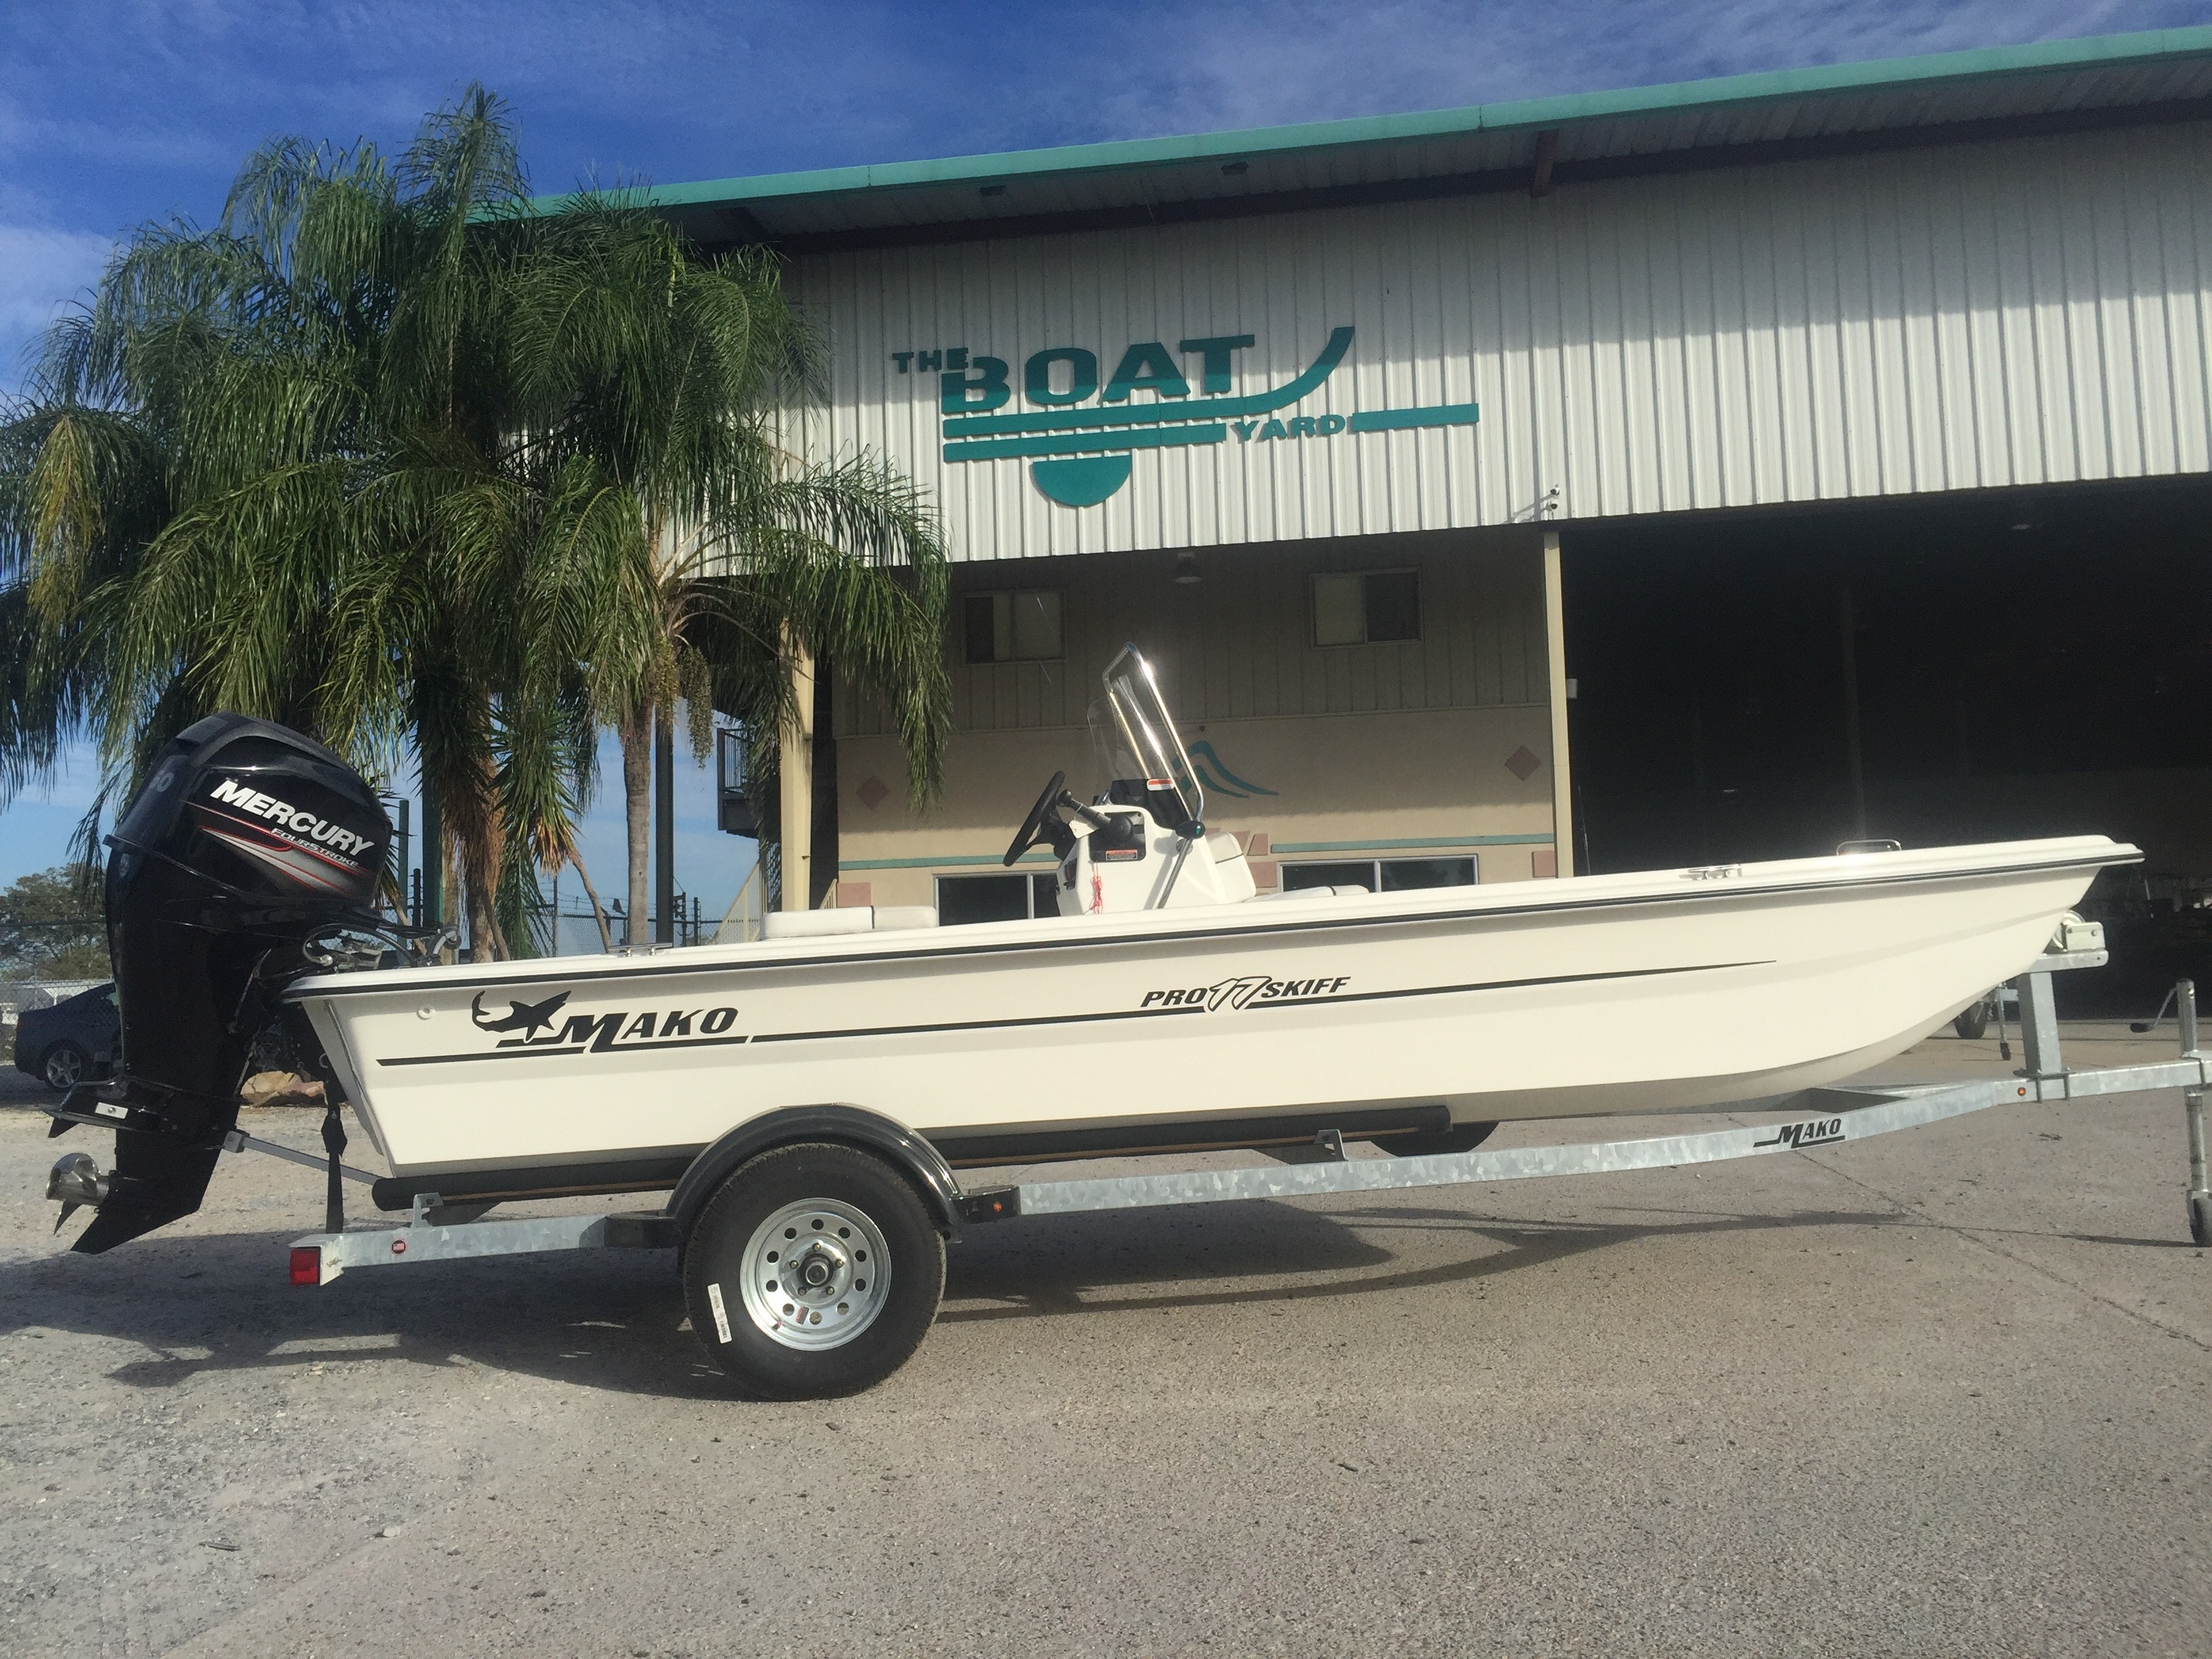 The boat yard inc coupons near me in marrero 8coupons for Outboard motor repair near me